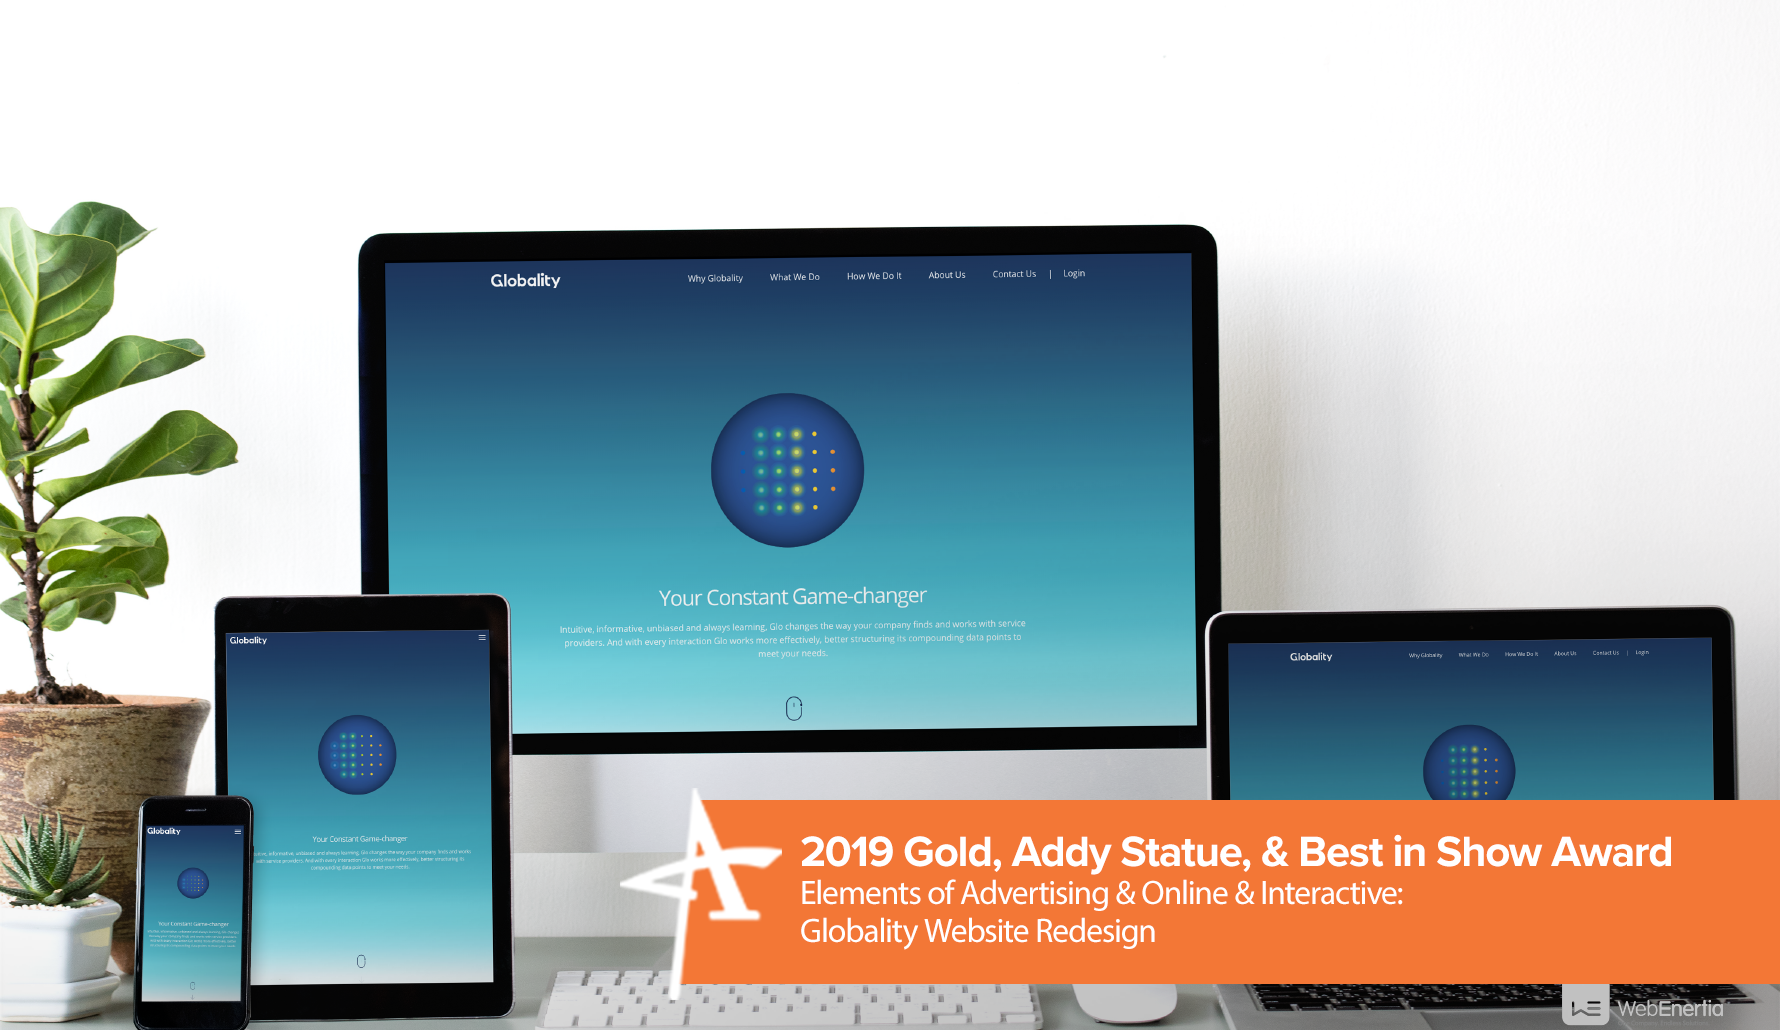 2019 Gold, Addy Statue & Best in Show Award - Elements of Advertising & Online & Interactive: Globality Website Redesign